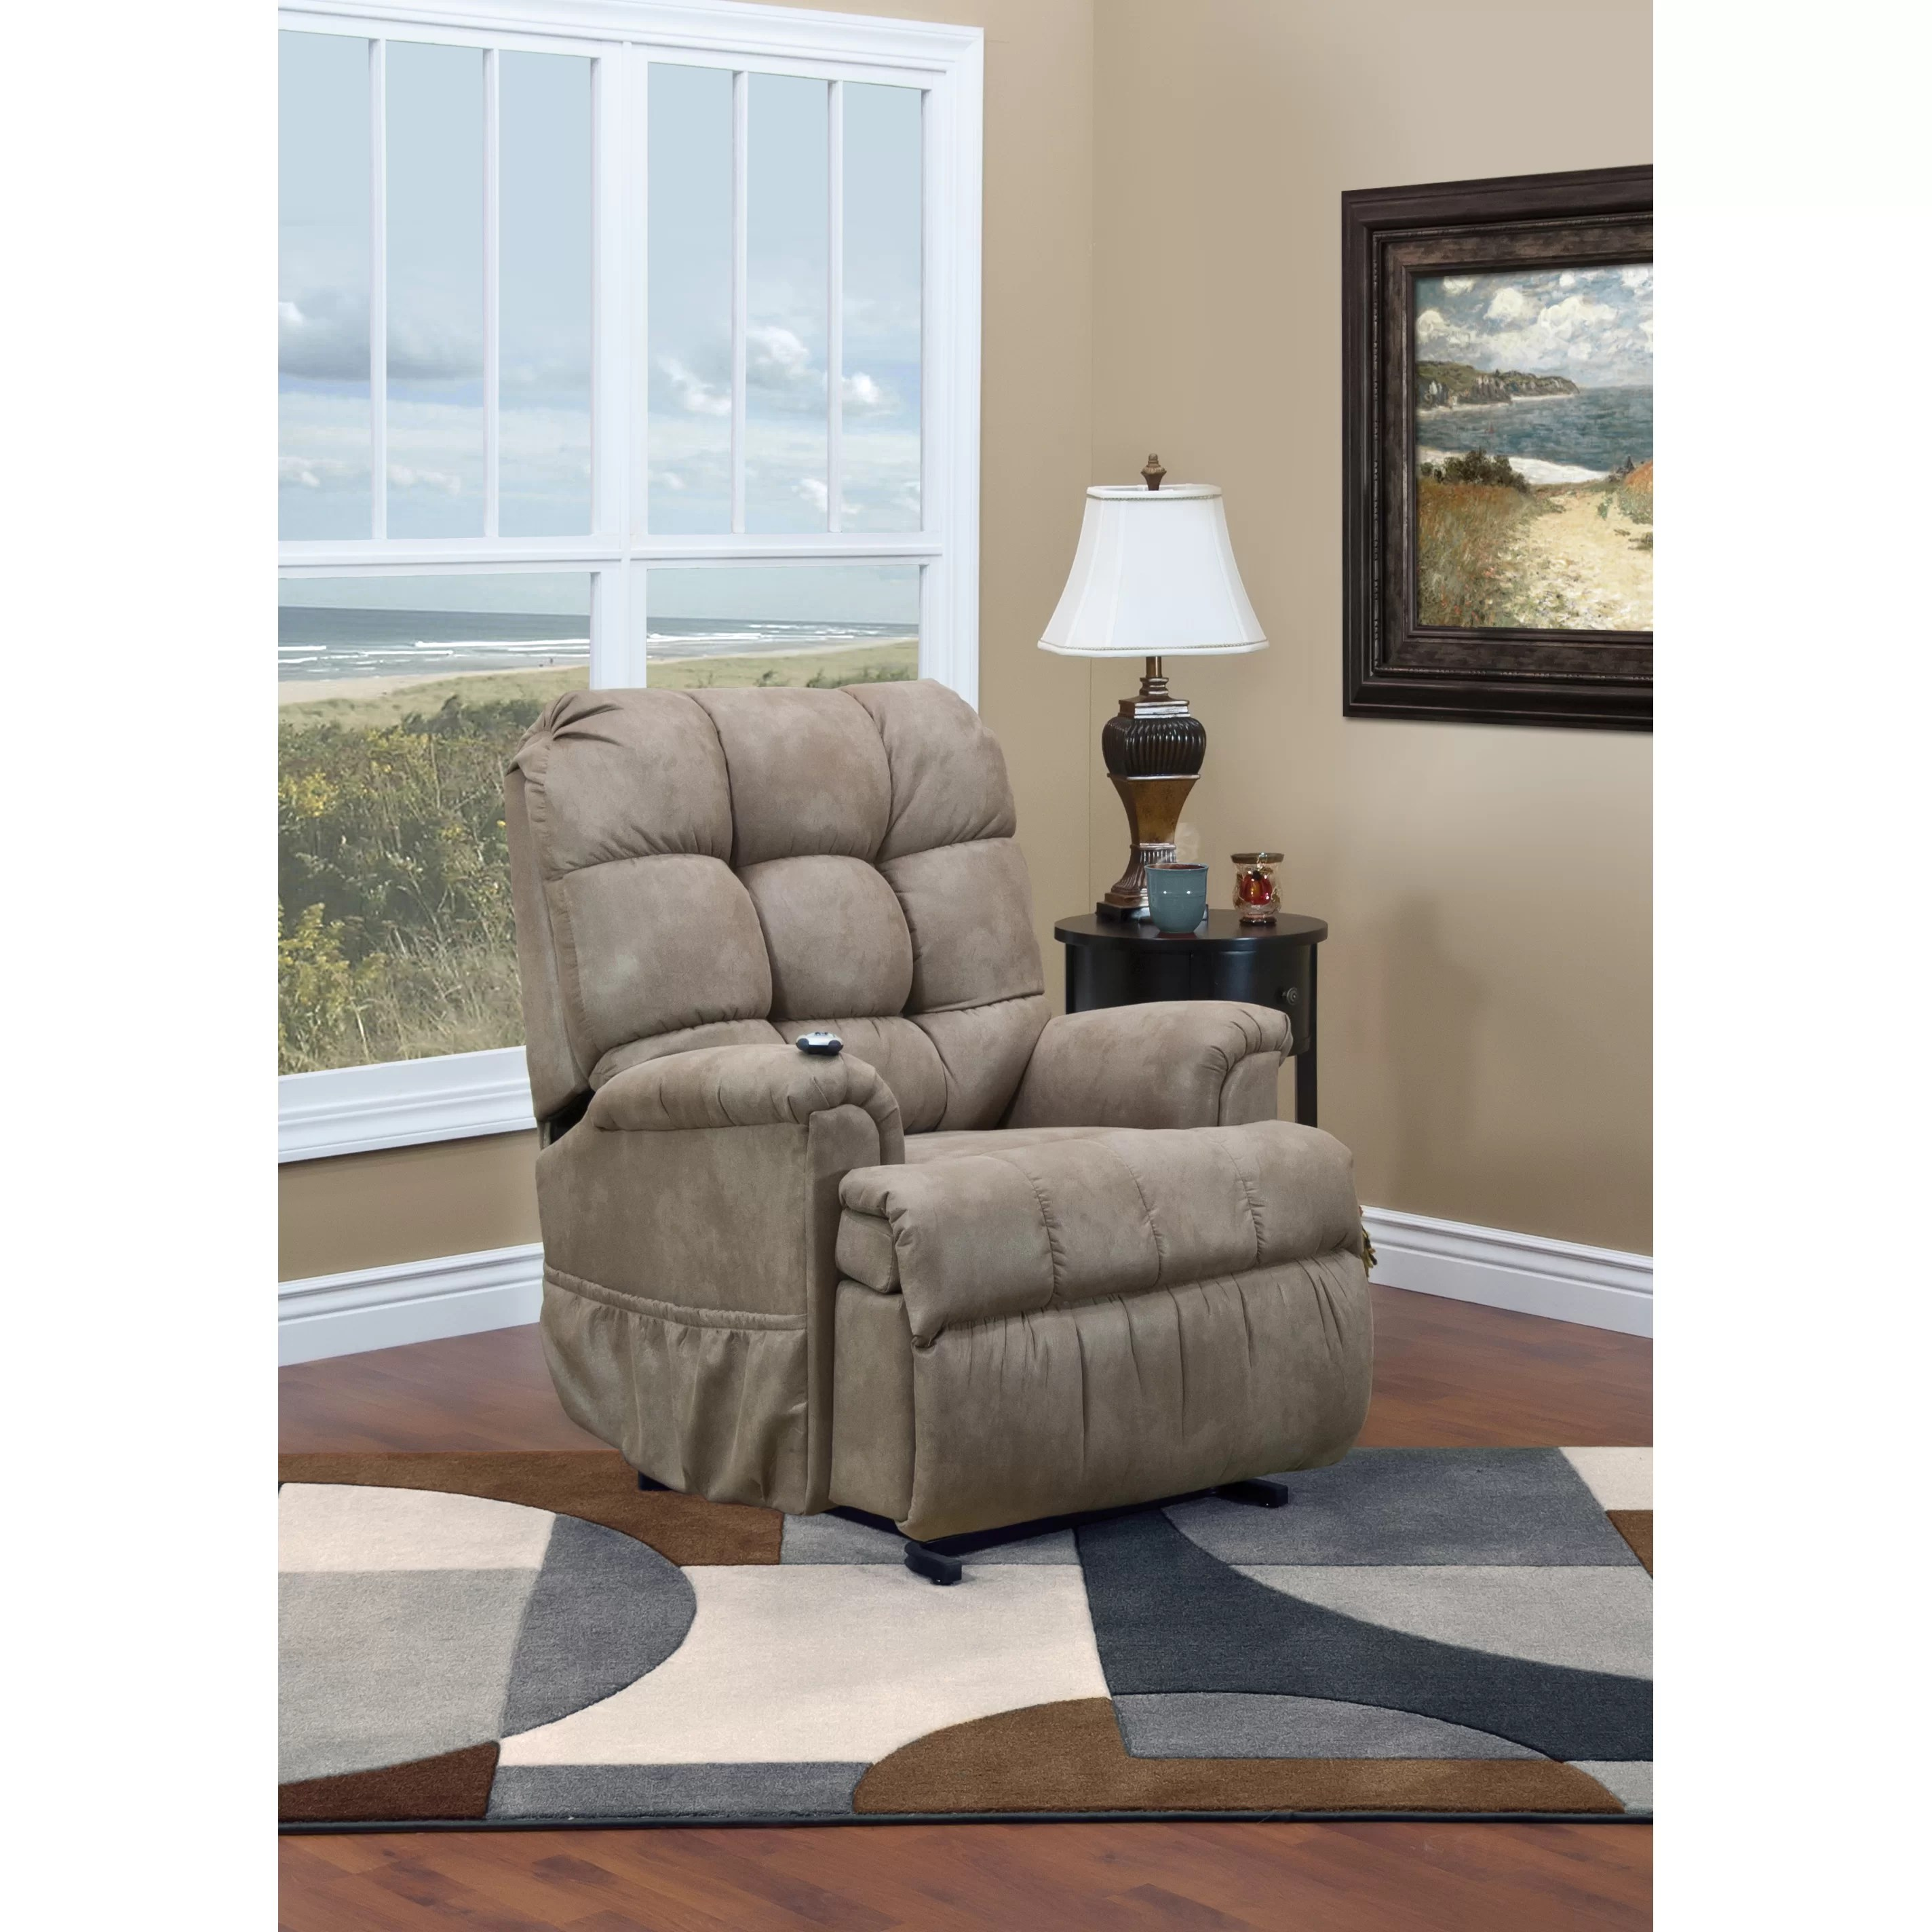 Med Lift Chairs Med Lift 5500 Series Wall A Way Reclining Lift Chair